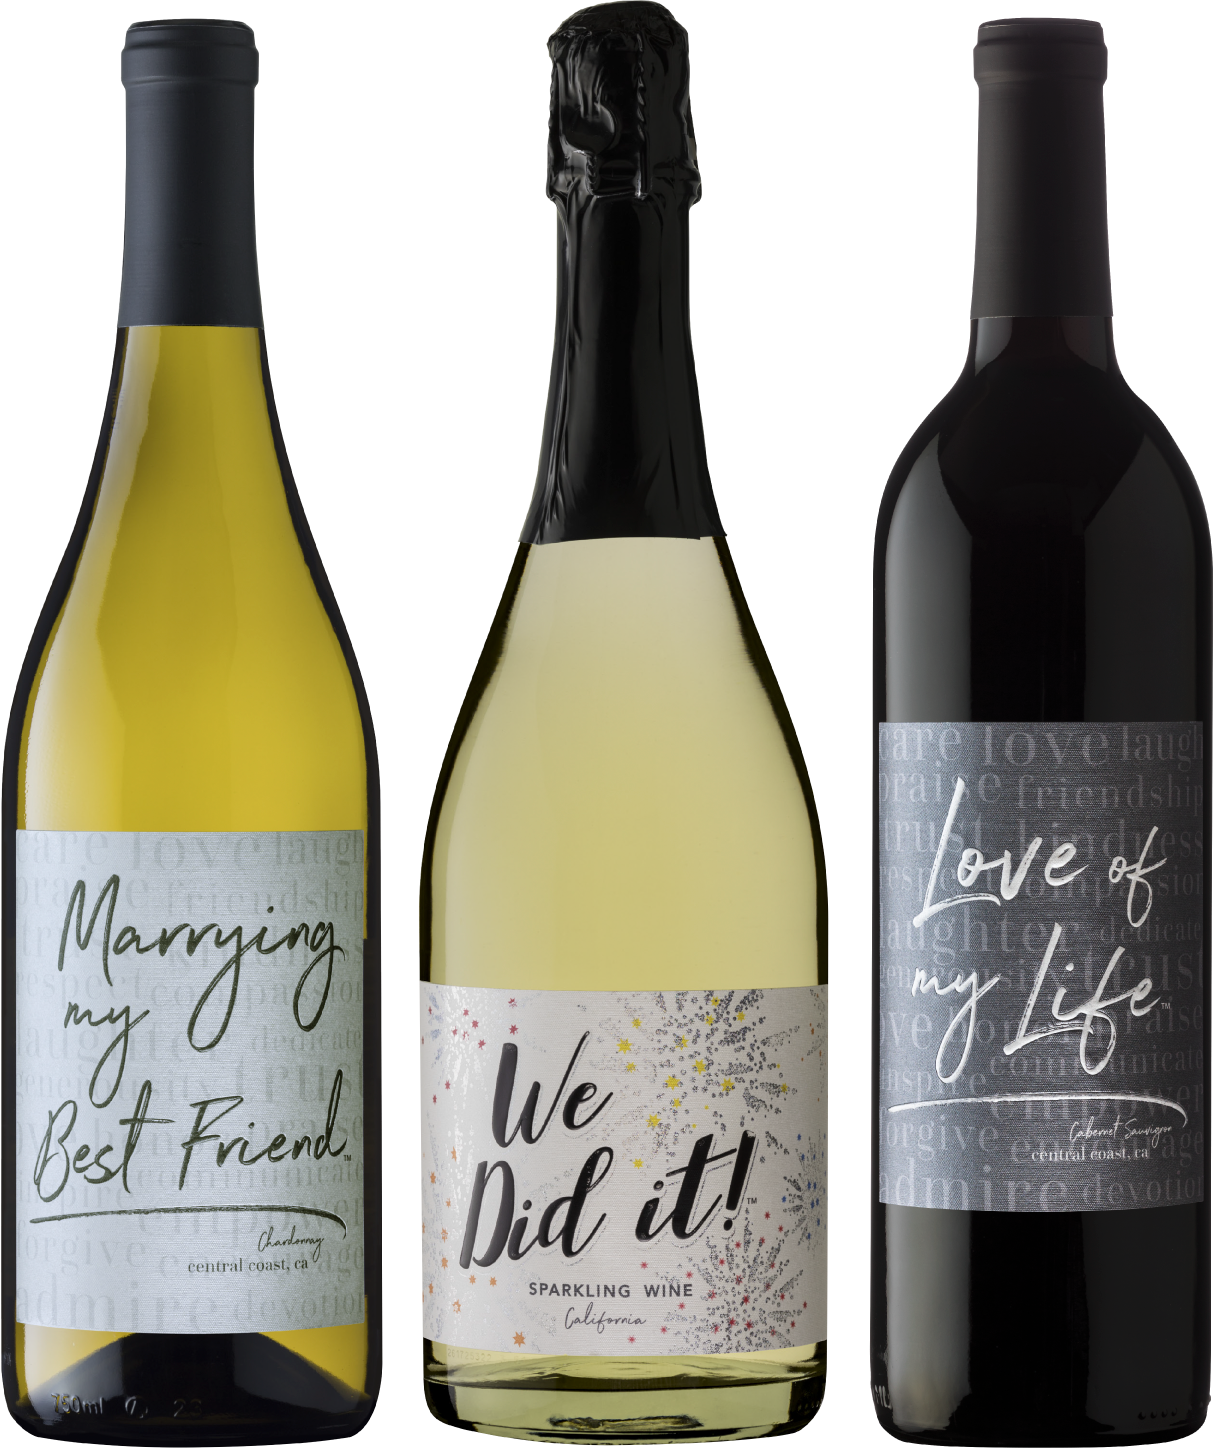 Trio - SAVE by ordering our TRIO, including one bottle each of Love Of My Life Cabernet Sauvignon, Marrying My Best Friend Chardonnay and We Did It! Sparkling Wine. We're delighted to offer a 25% discount on the TRIO. A wonderful way to sample each of our wines. Taste it, try it, celebrate with it!